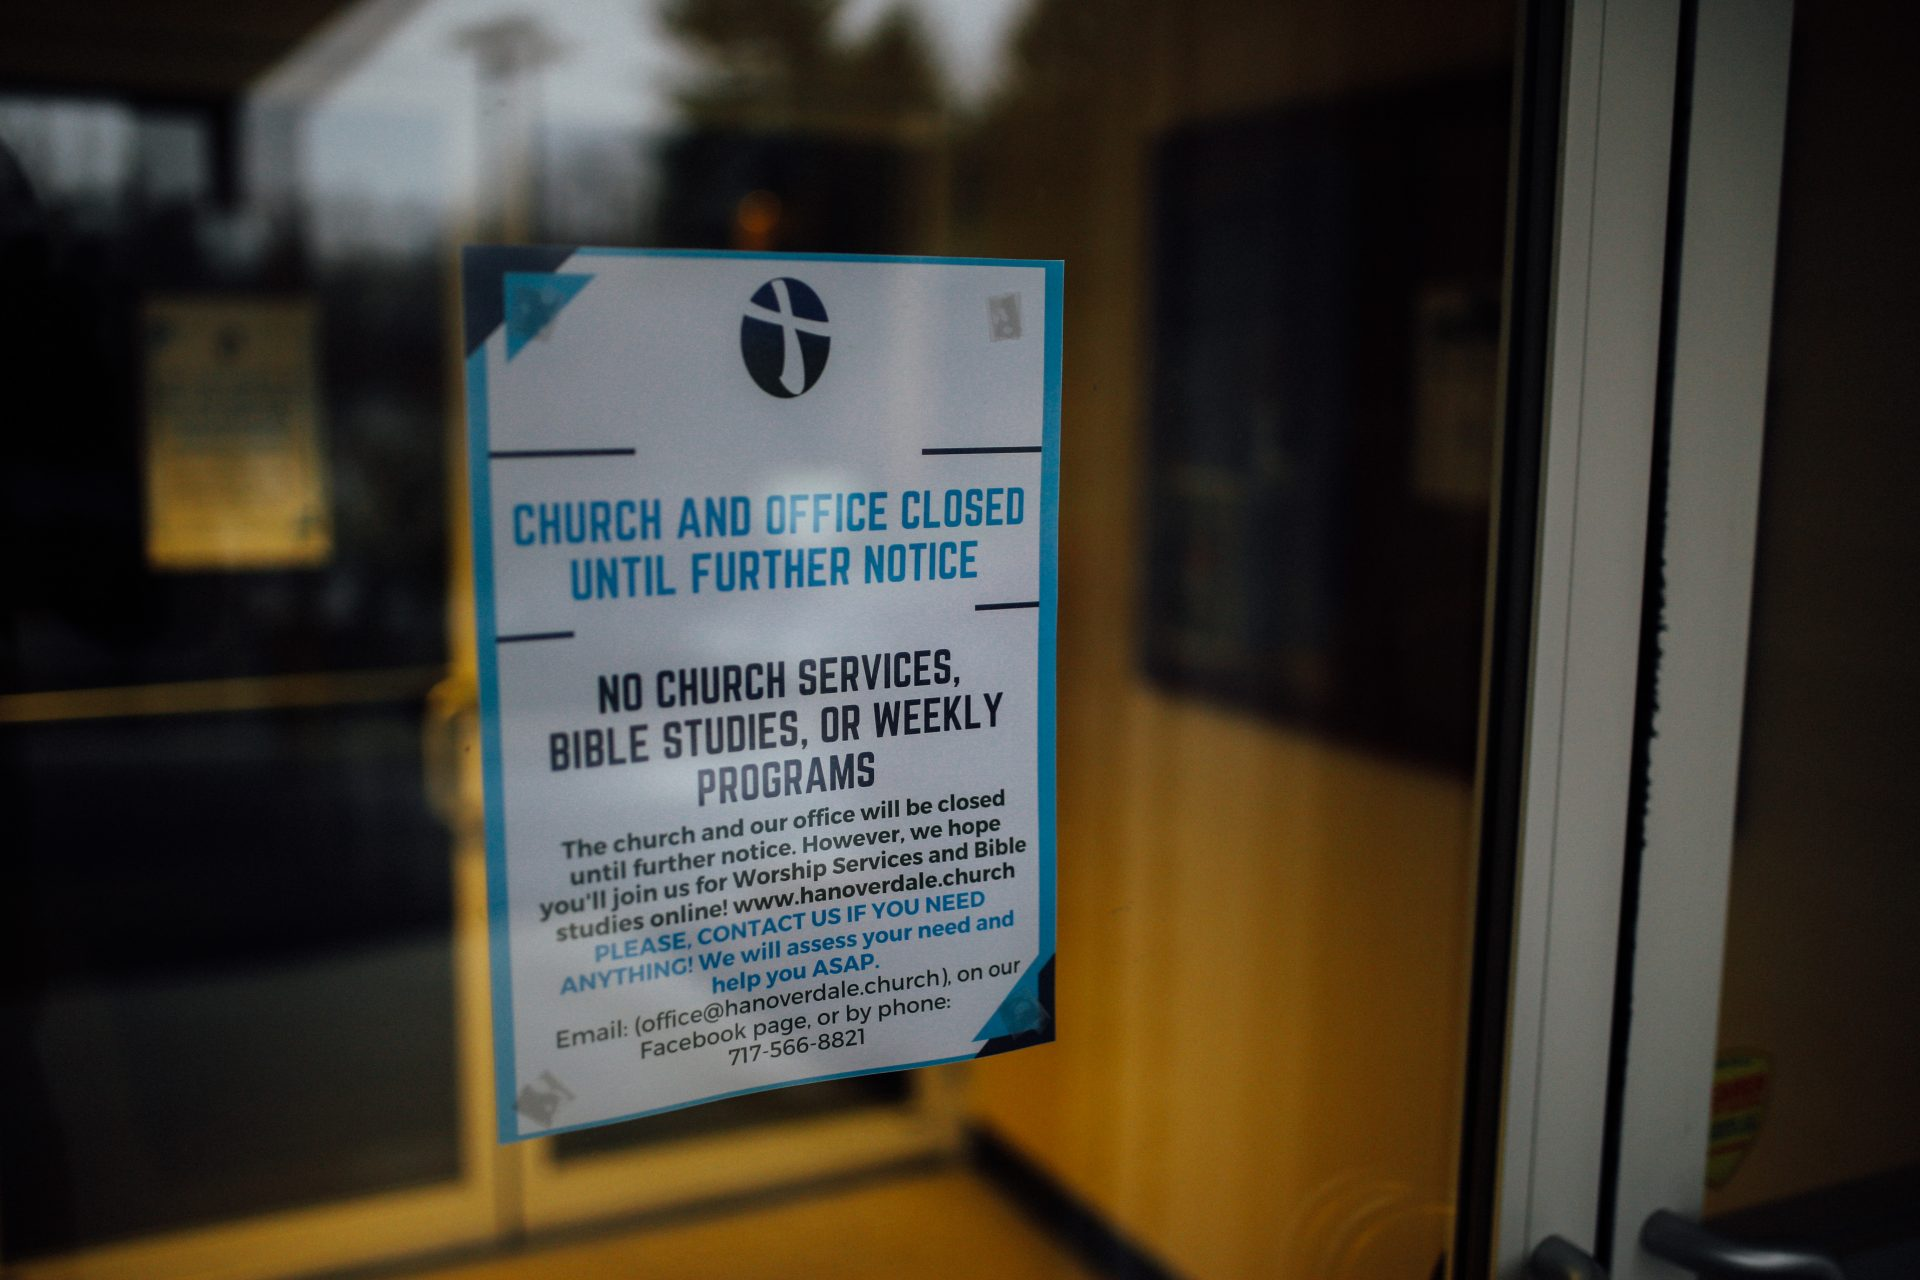 A sign on the Hanoverdale Church of The Brethren in Hummelstown, Pa., shows the church and office are closed until further notice during the coronavirus pandemic and statewide stay-at-home order.